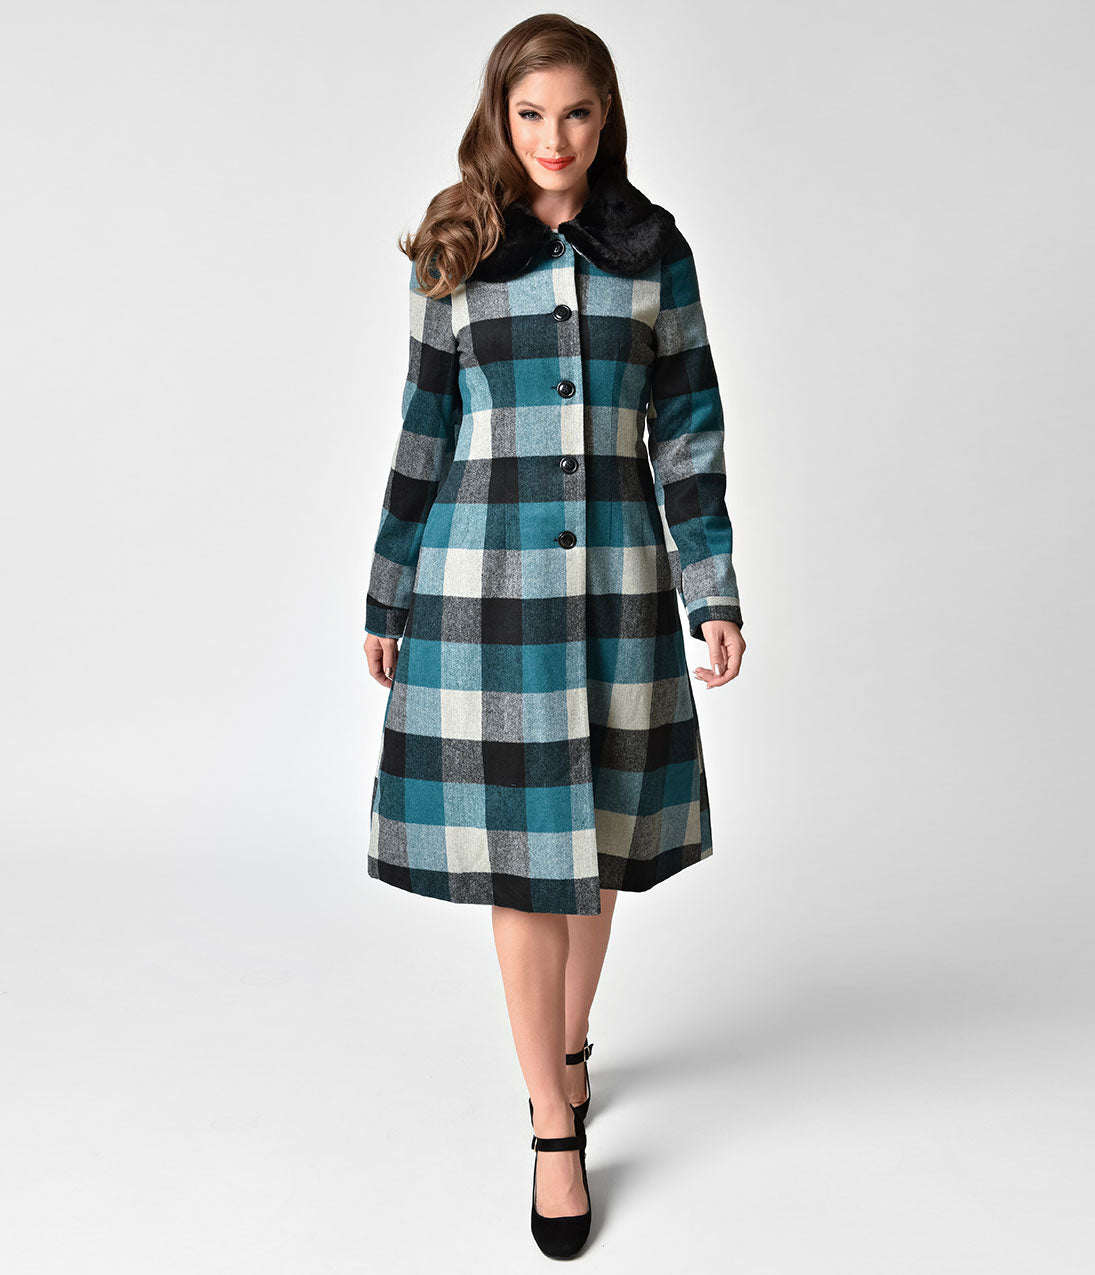 1950s Jackets and Coats | Swing, Pin Up, Rockabilly Voodoo Vixen Blue  Black Plaid Wooly Beatrice Coat $77.00 AT vintagedancer.com